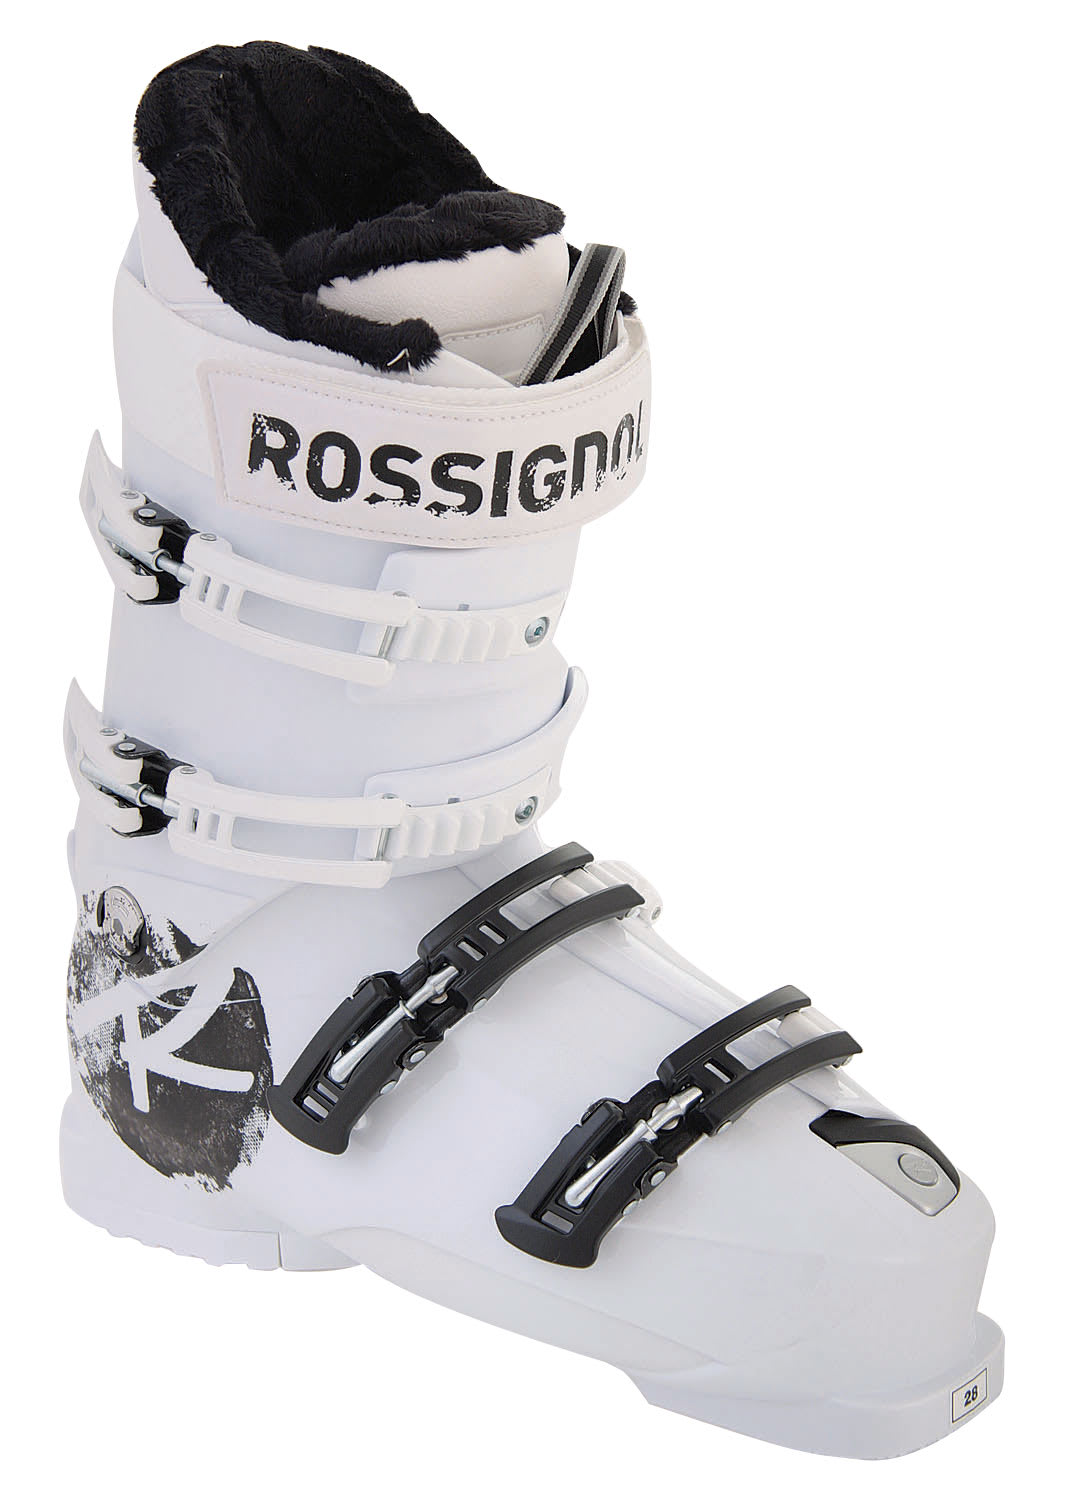 Shop for Rossignol SAS 110 Sensor3 Ski Boots - Men's